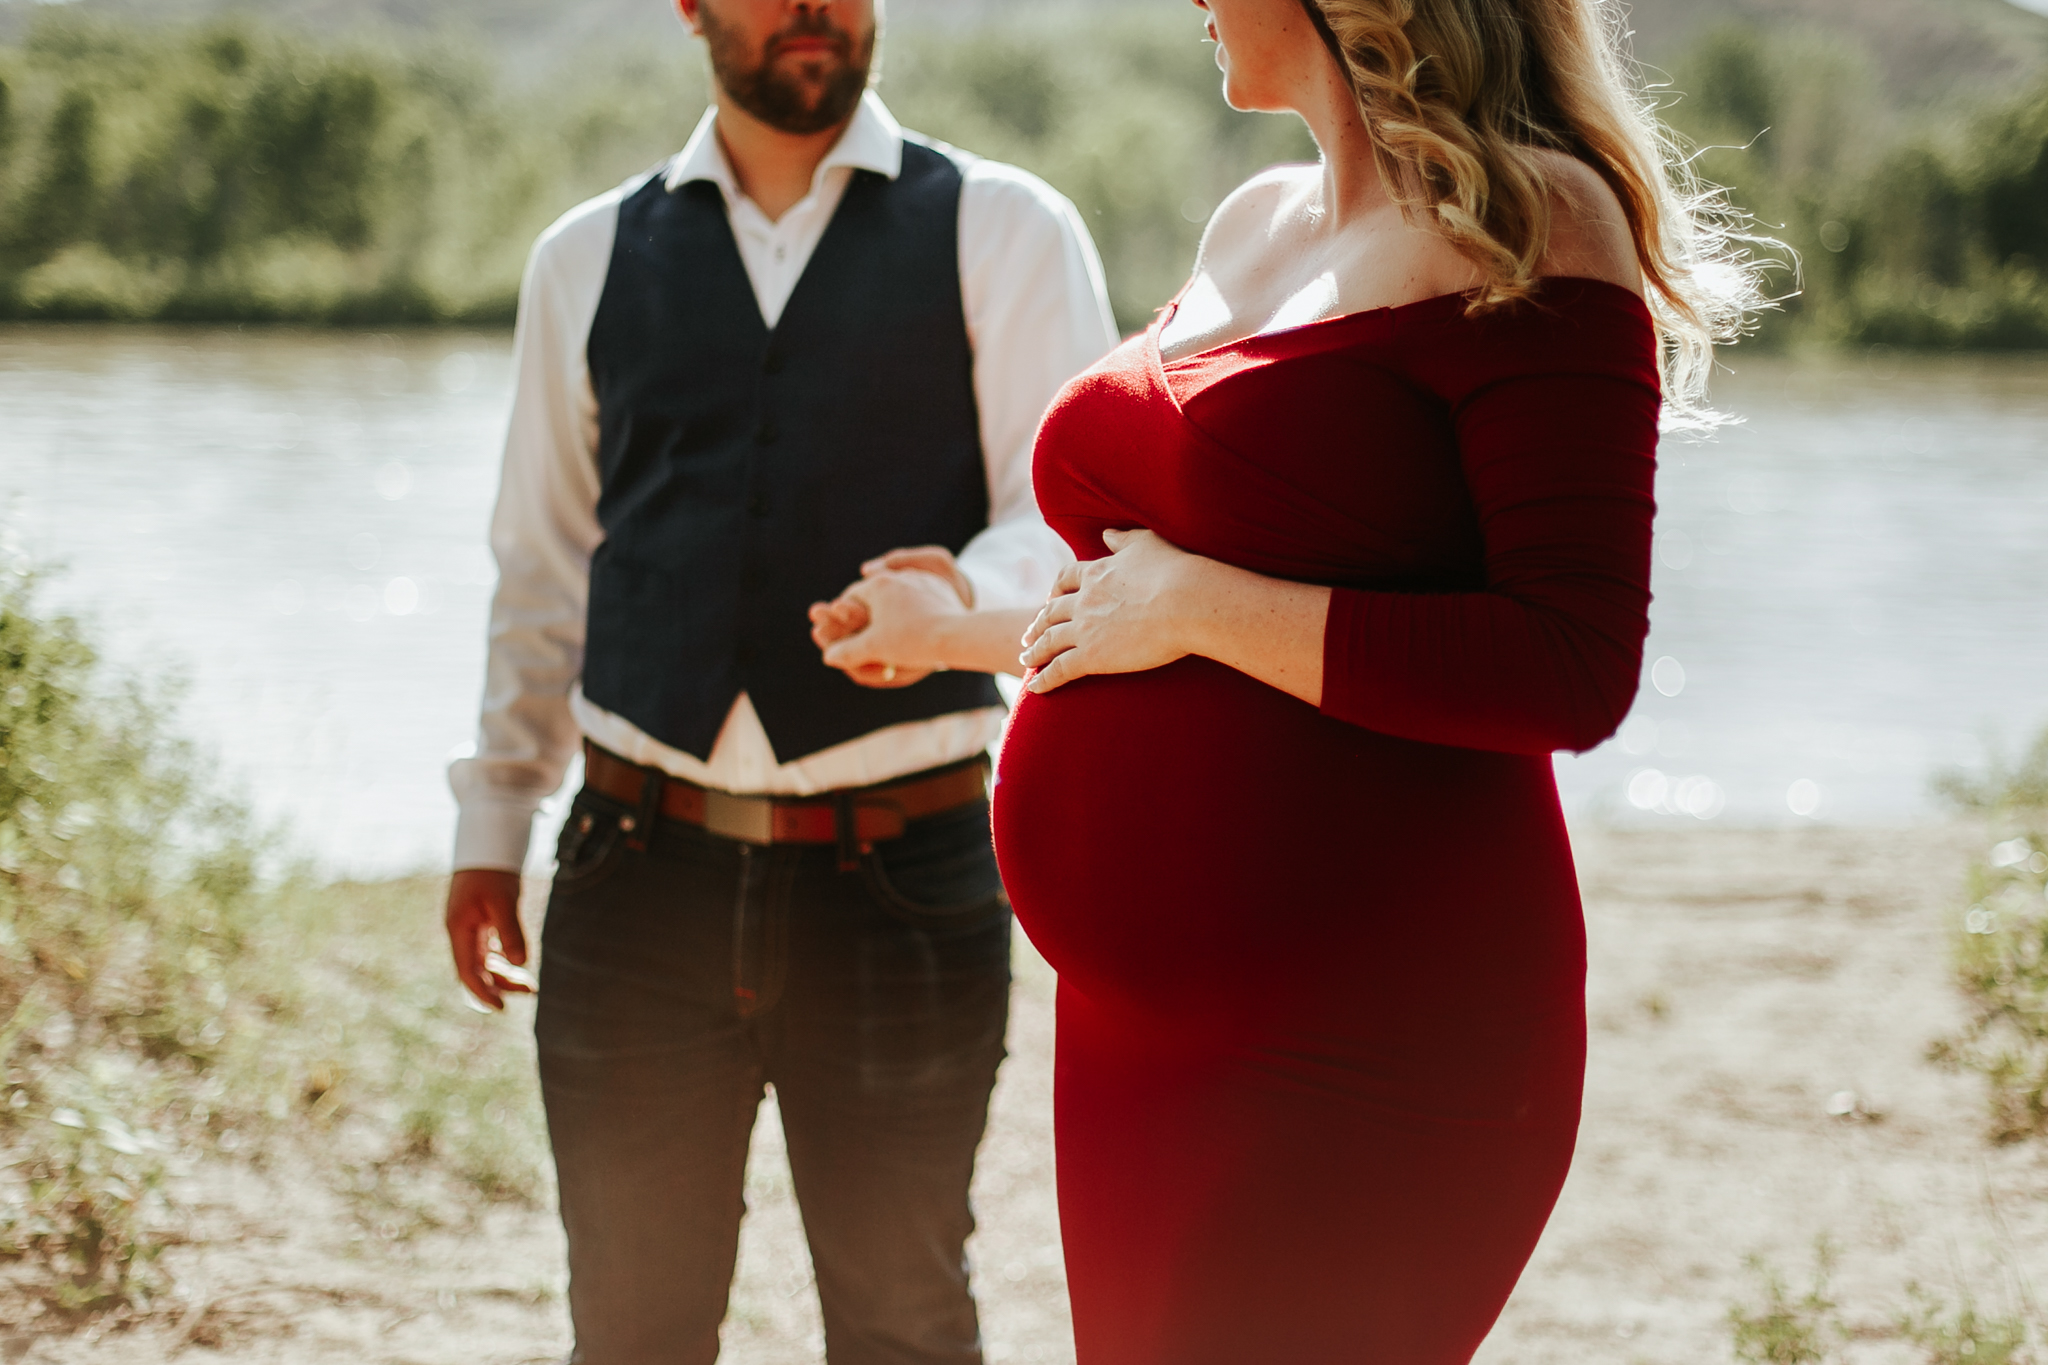 lethbridge-photographer-love-and-be-loved-photography-katie-maternity-birth-photographer-picture-image-photo-11.jpg